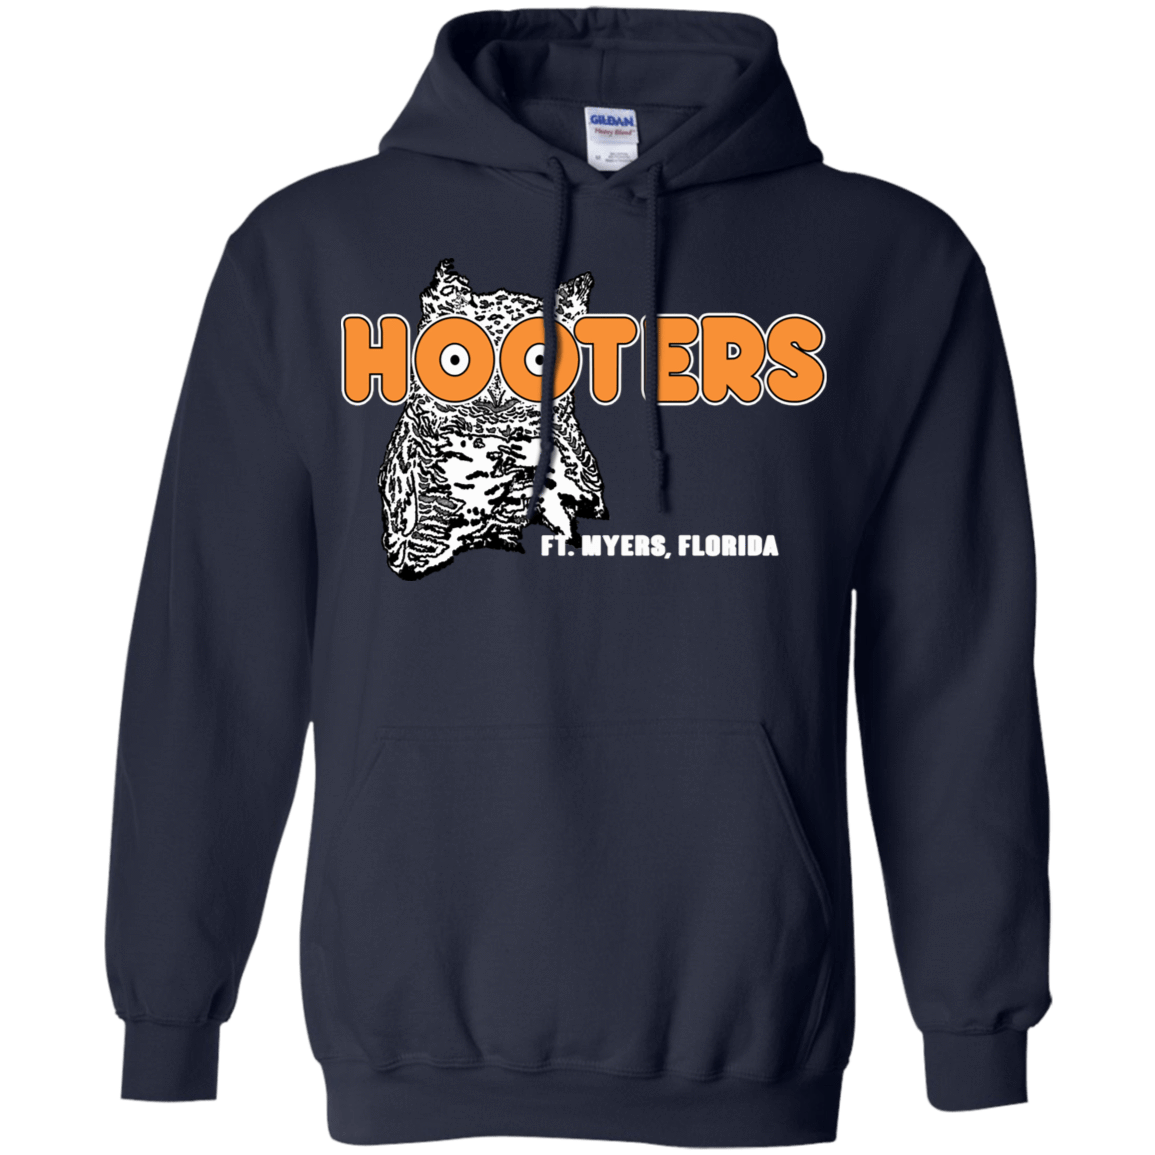 Hooters T-Shirts Fort Myers, Florida 541-4742-73155976-23135 - Tee Ript